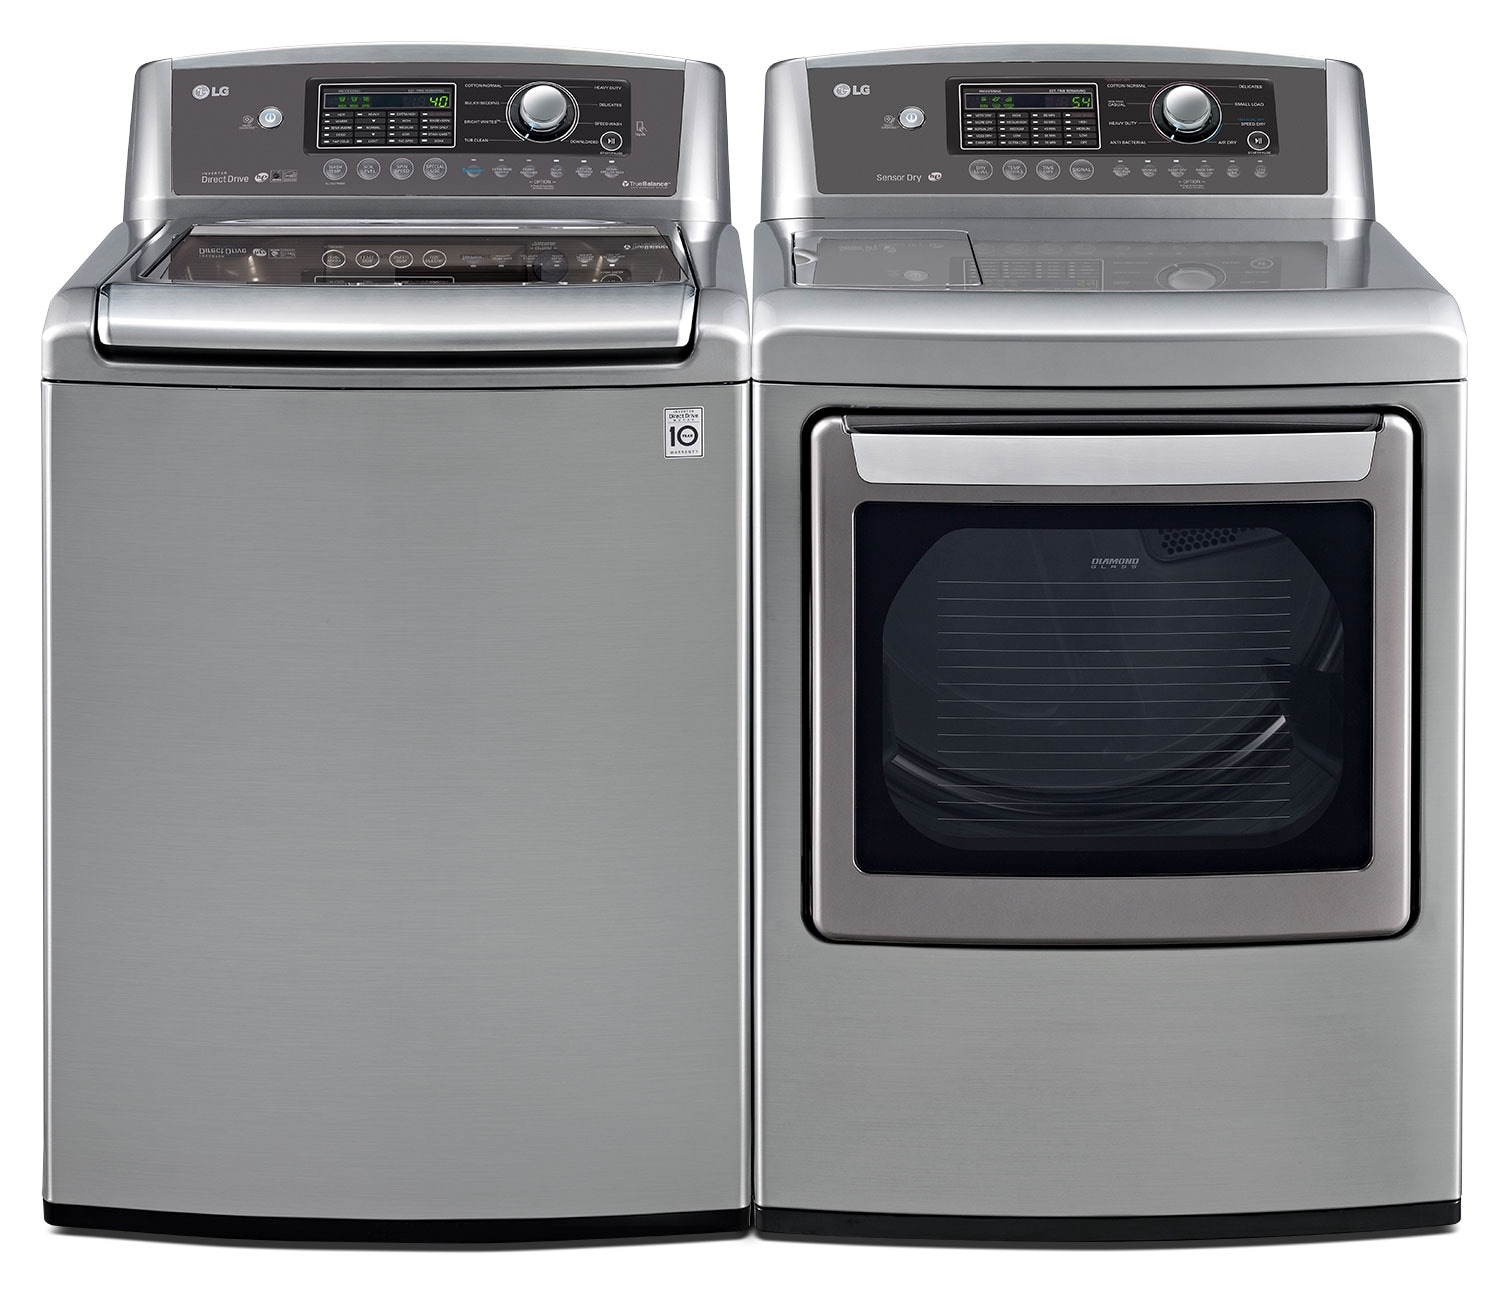 LG 5.6 Cu. Ft. High-Efficiency Top-Load Washer and 7.3 Cu. Ft. Electric Dryer - Graphite Steel